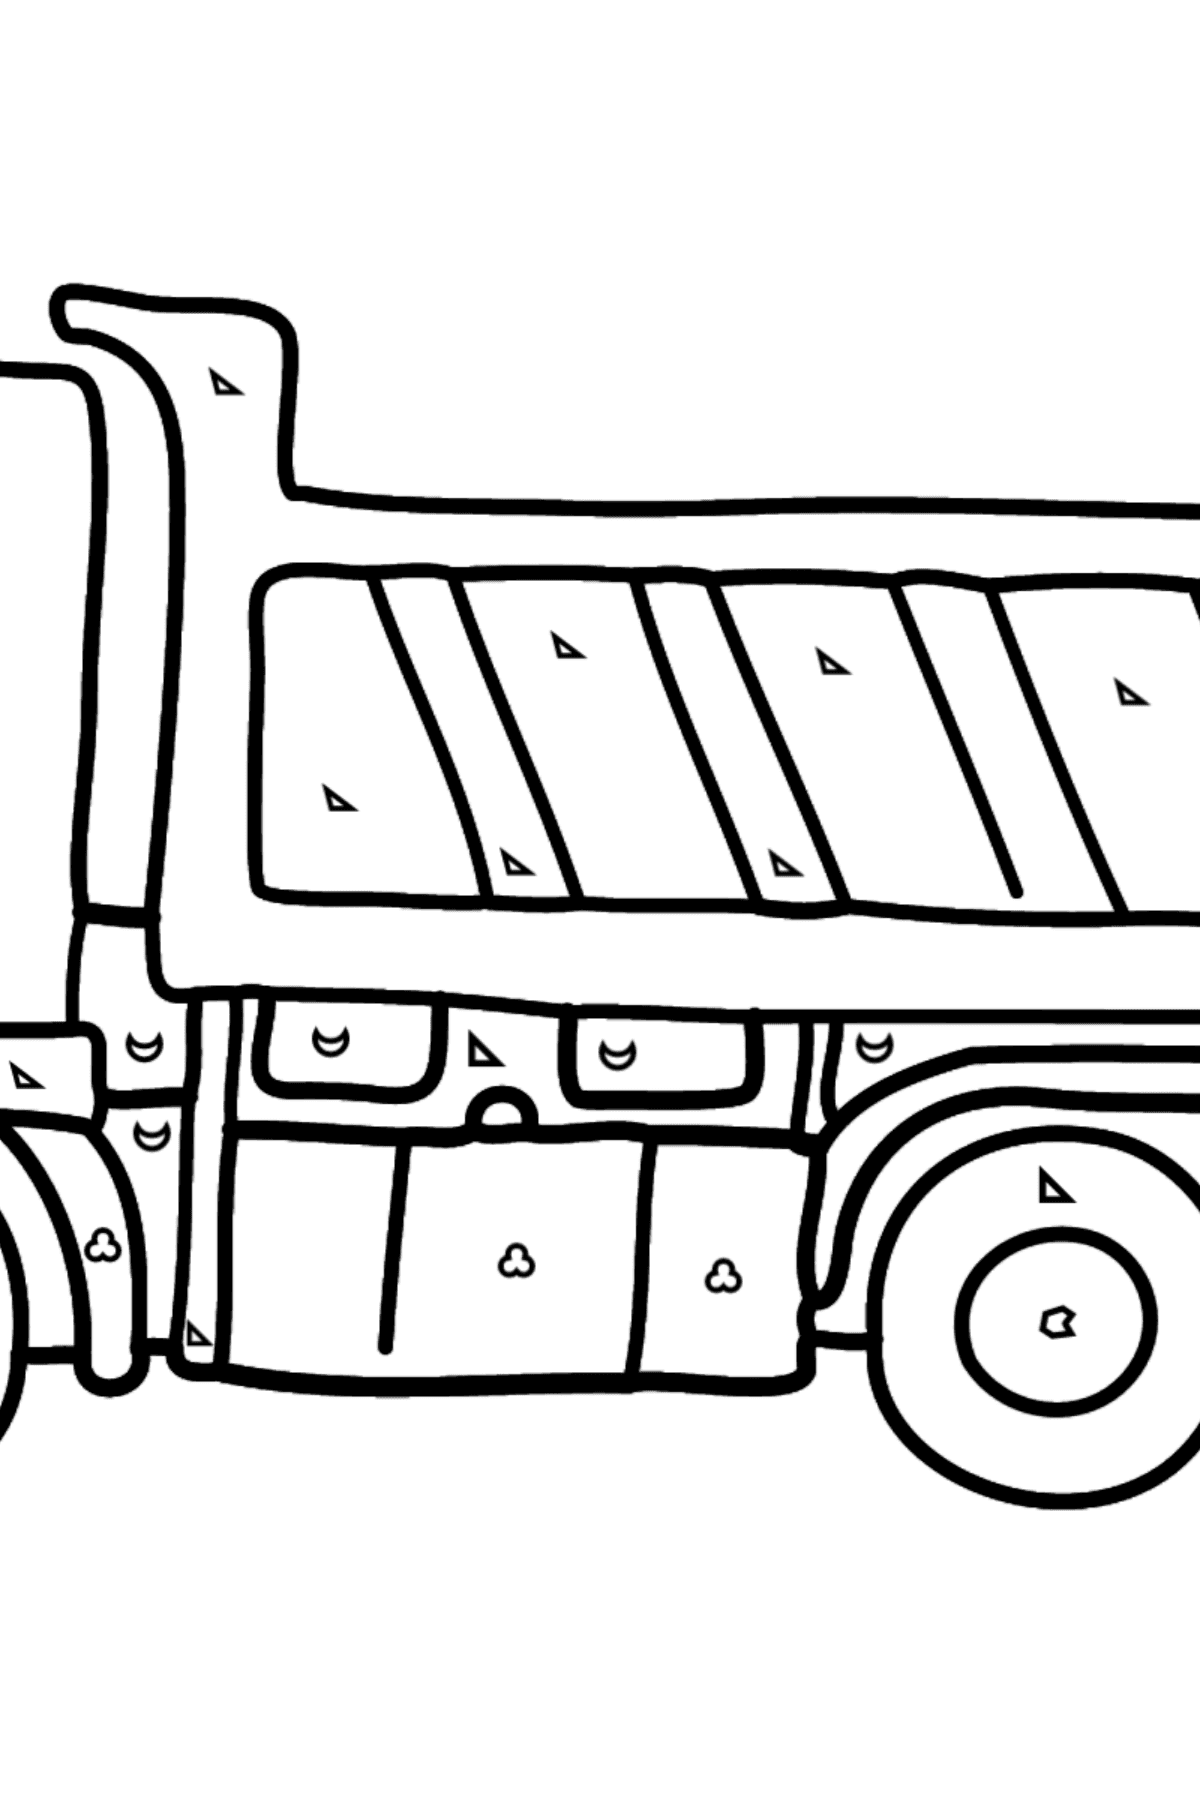 Coloring Page - A Dump Truck - Coloring by Geometric Shapes for Kids